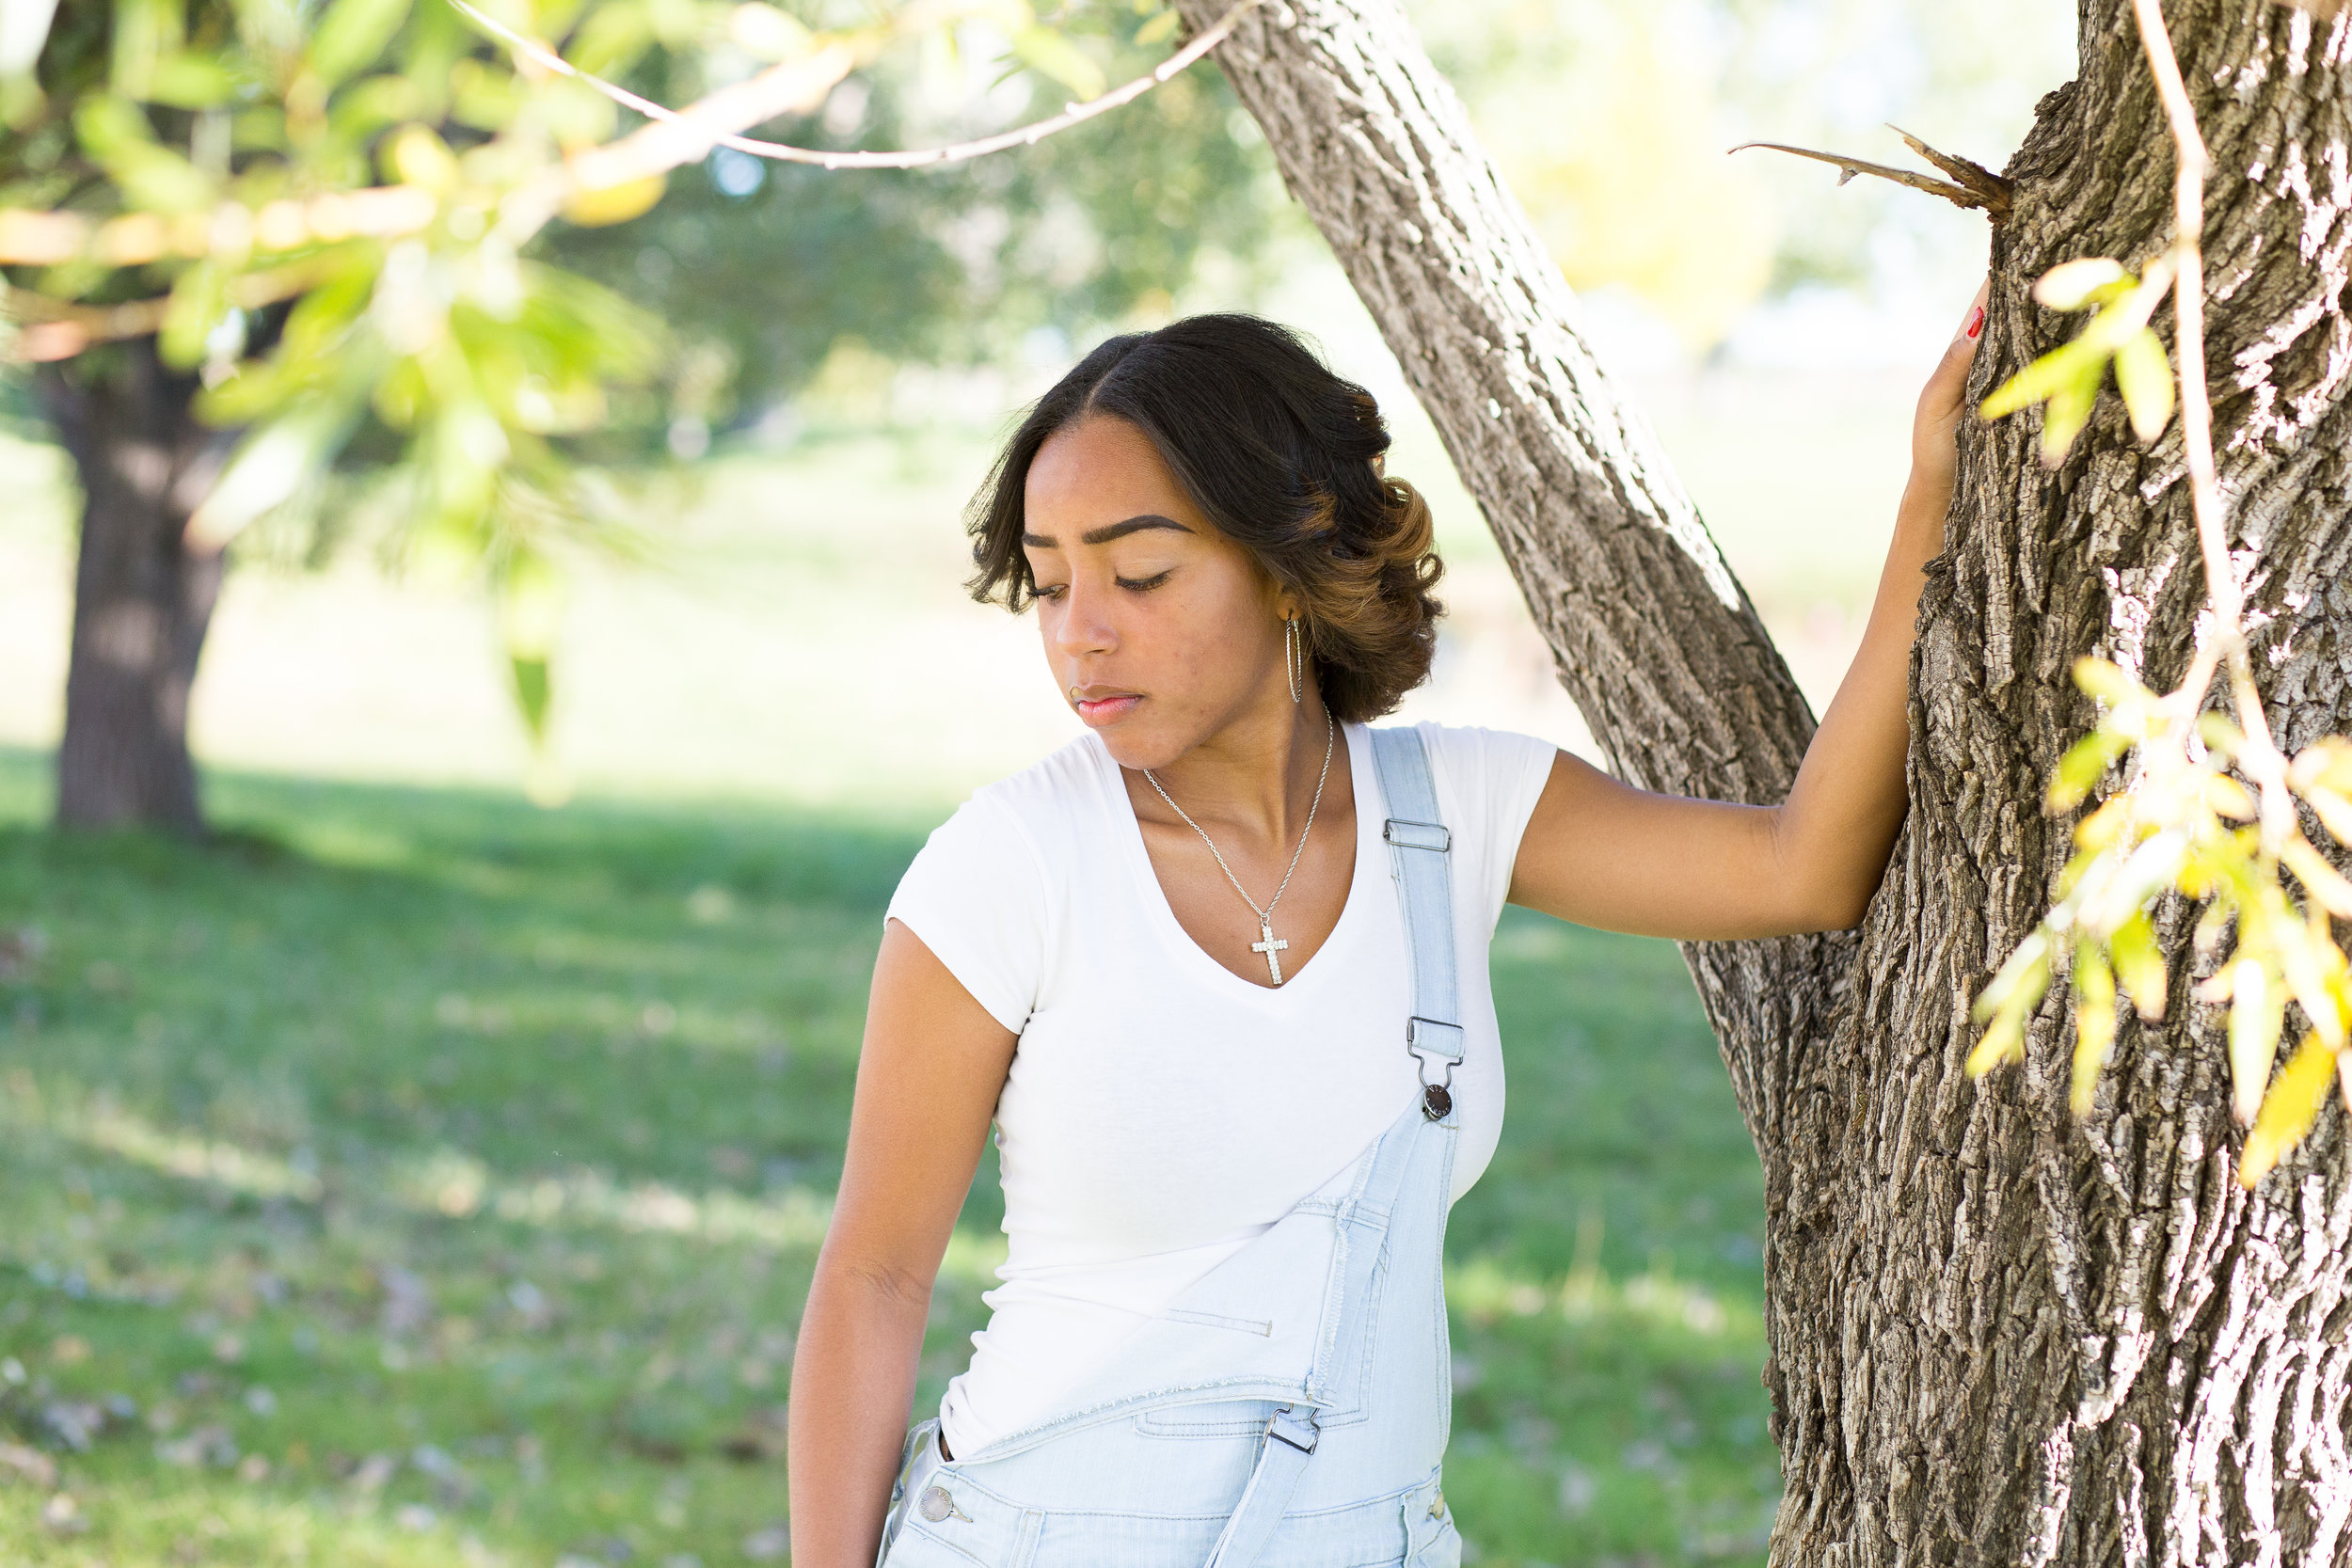 Widefield High School in Colorado Springs Senior Photographer Girl holding on to side of tree and looking at ground in deep thought Stacy Carosa Photography